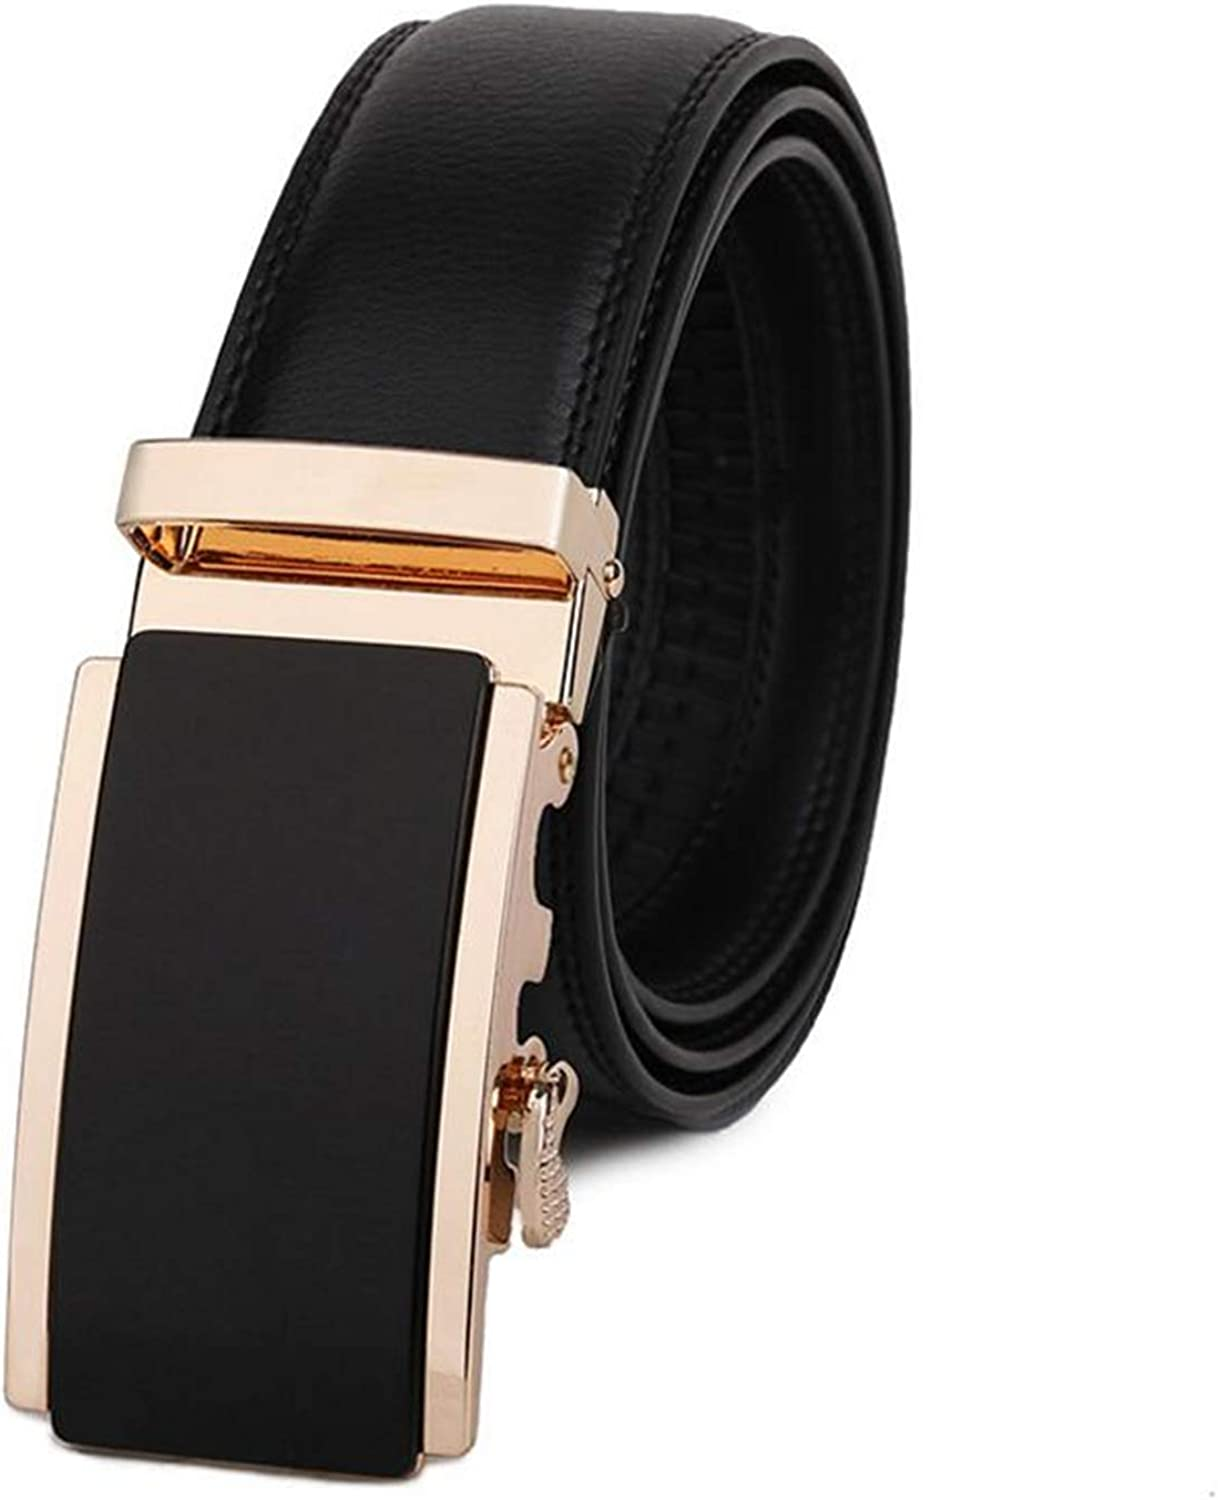 Leather Belt Men Genuine Leather Hard-Wearing Belts Business Casual Waist Automatic Gold Buckle Male Strap